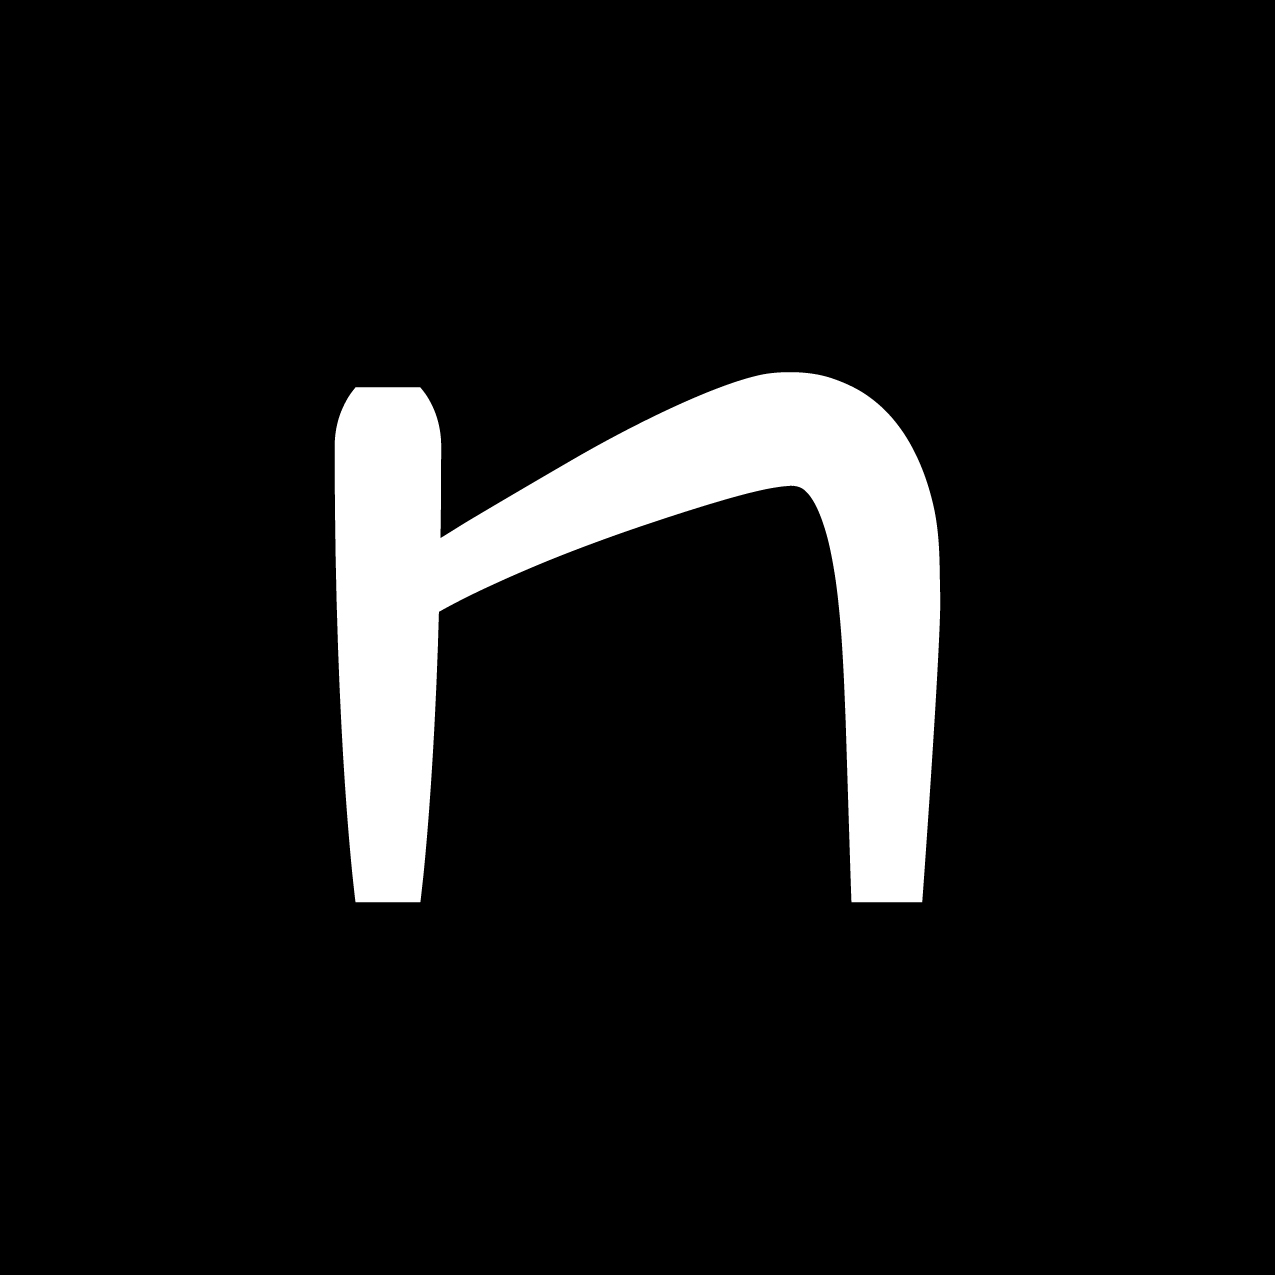 Letter N5 Design by Furia